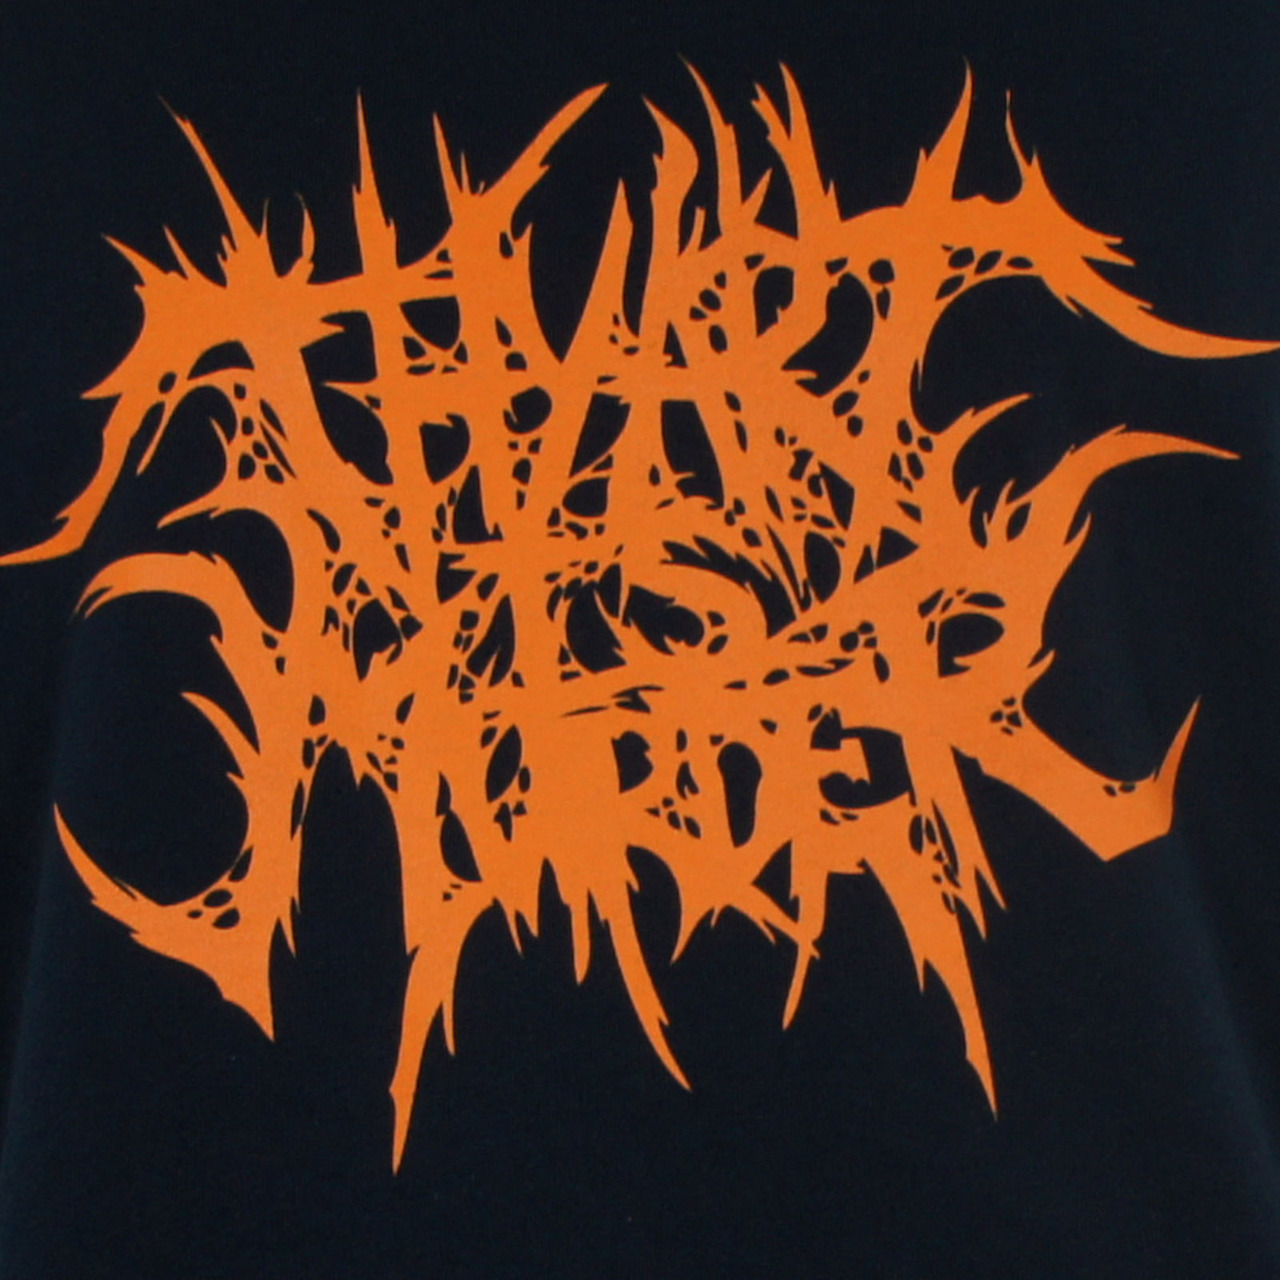 Thy Art Is Murder Logos